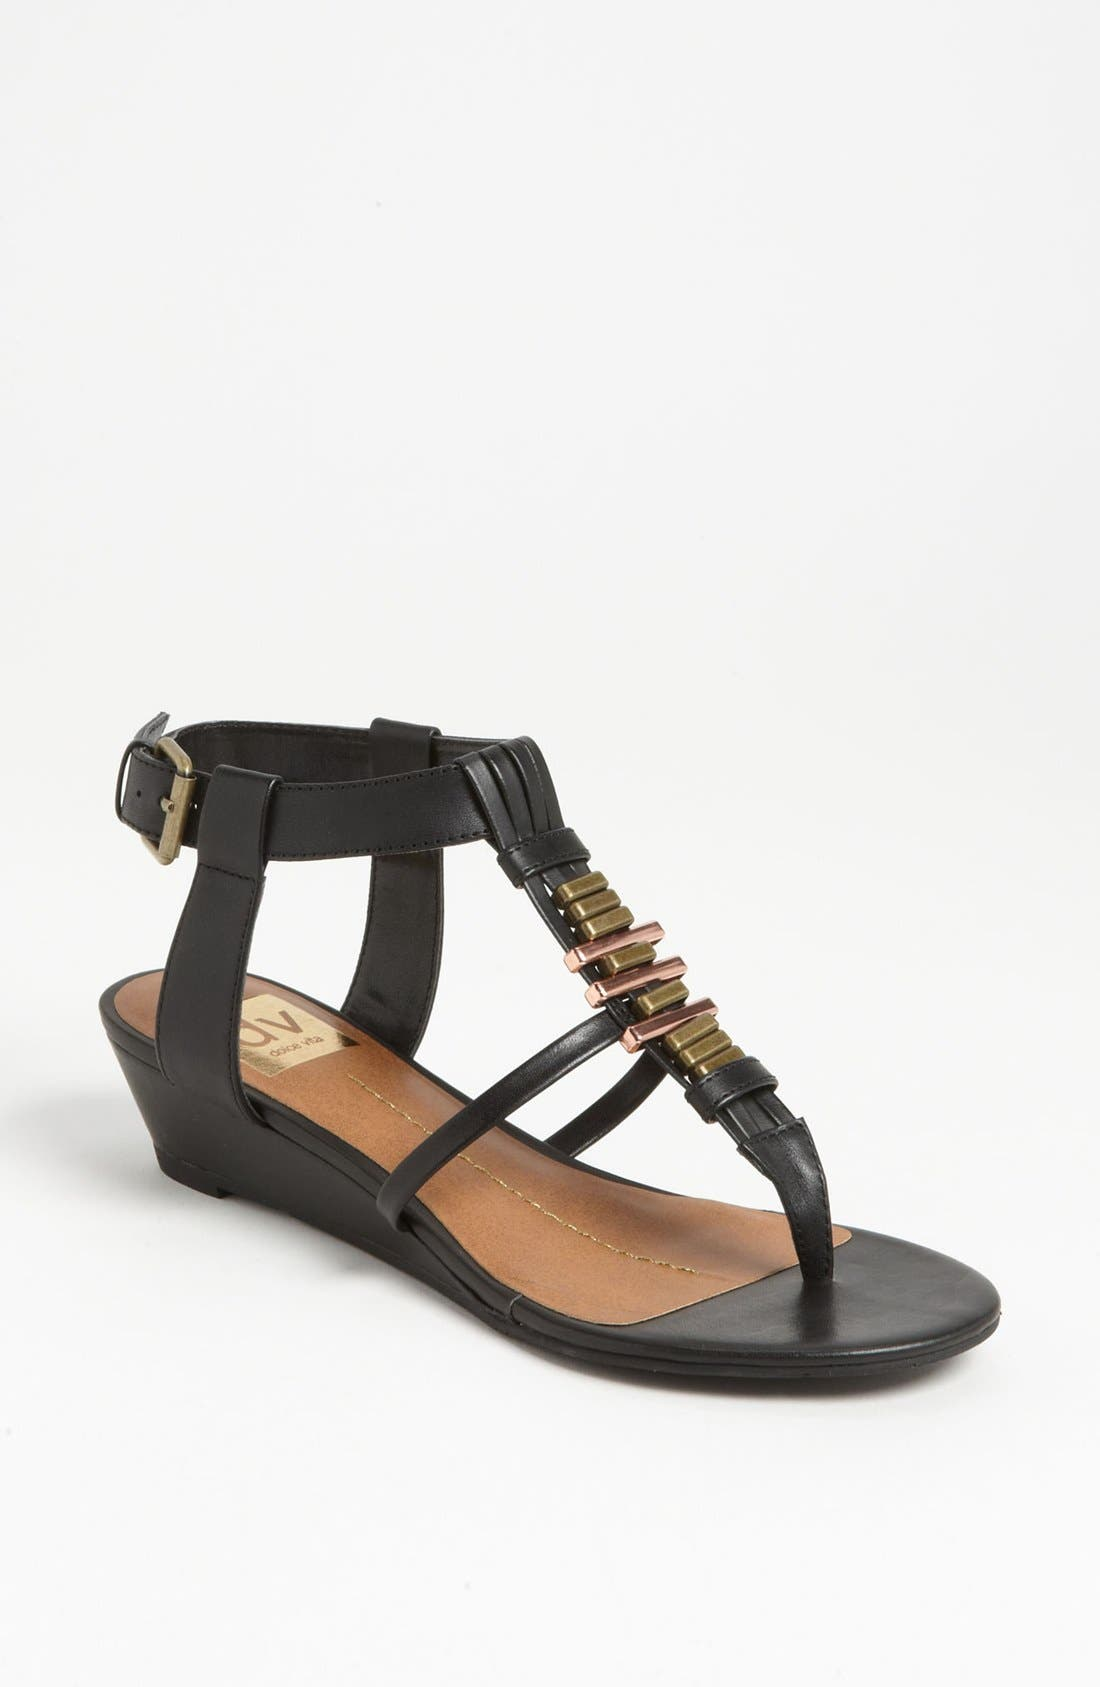 Alternate Image 1 Selected - DV by Dolce Vita 'Faline' Sandal (Online Only)